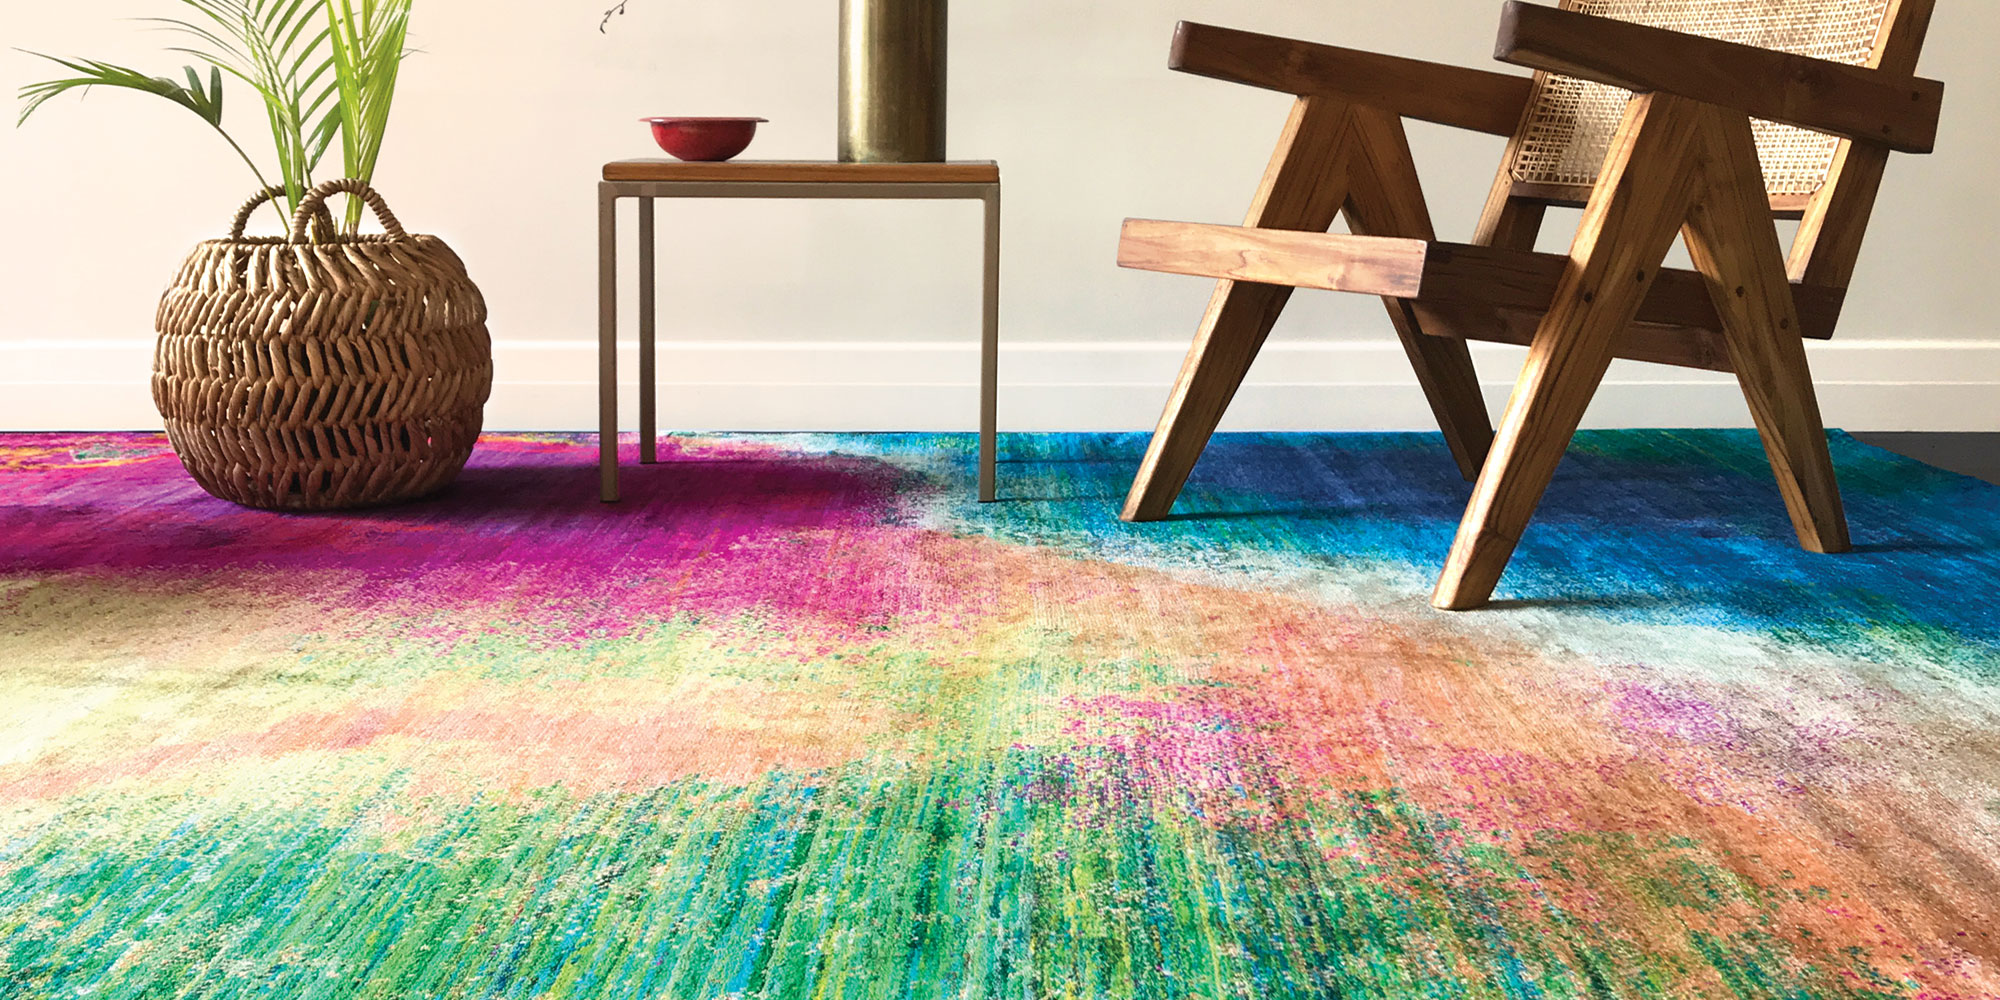 The Colour options of Summer - Part 2 Textural and Cool - Green & Blue Rugs